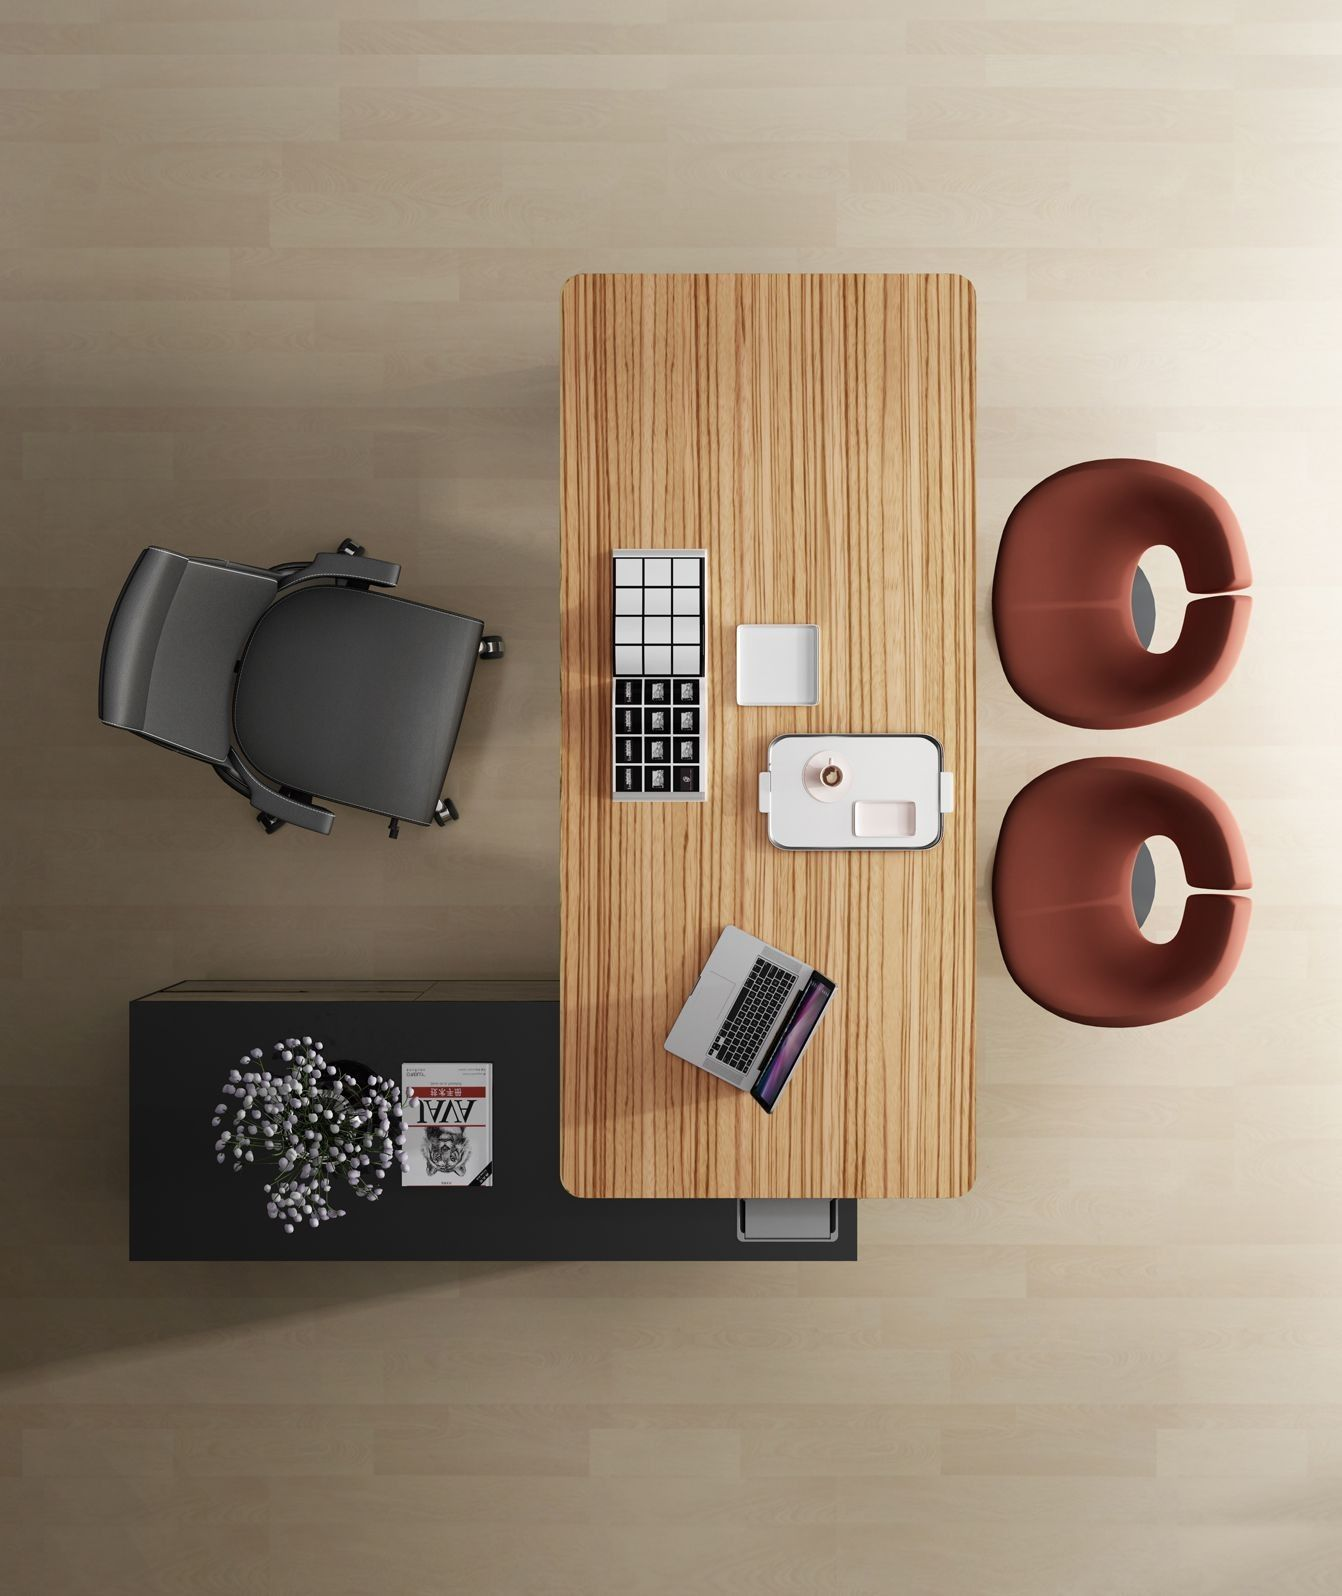 modern furniture top view - Google Search | Top view ...